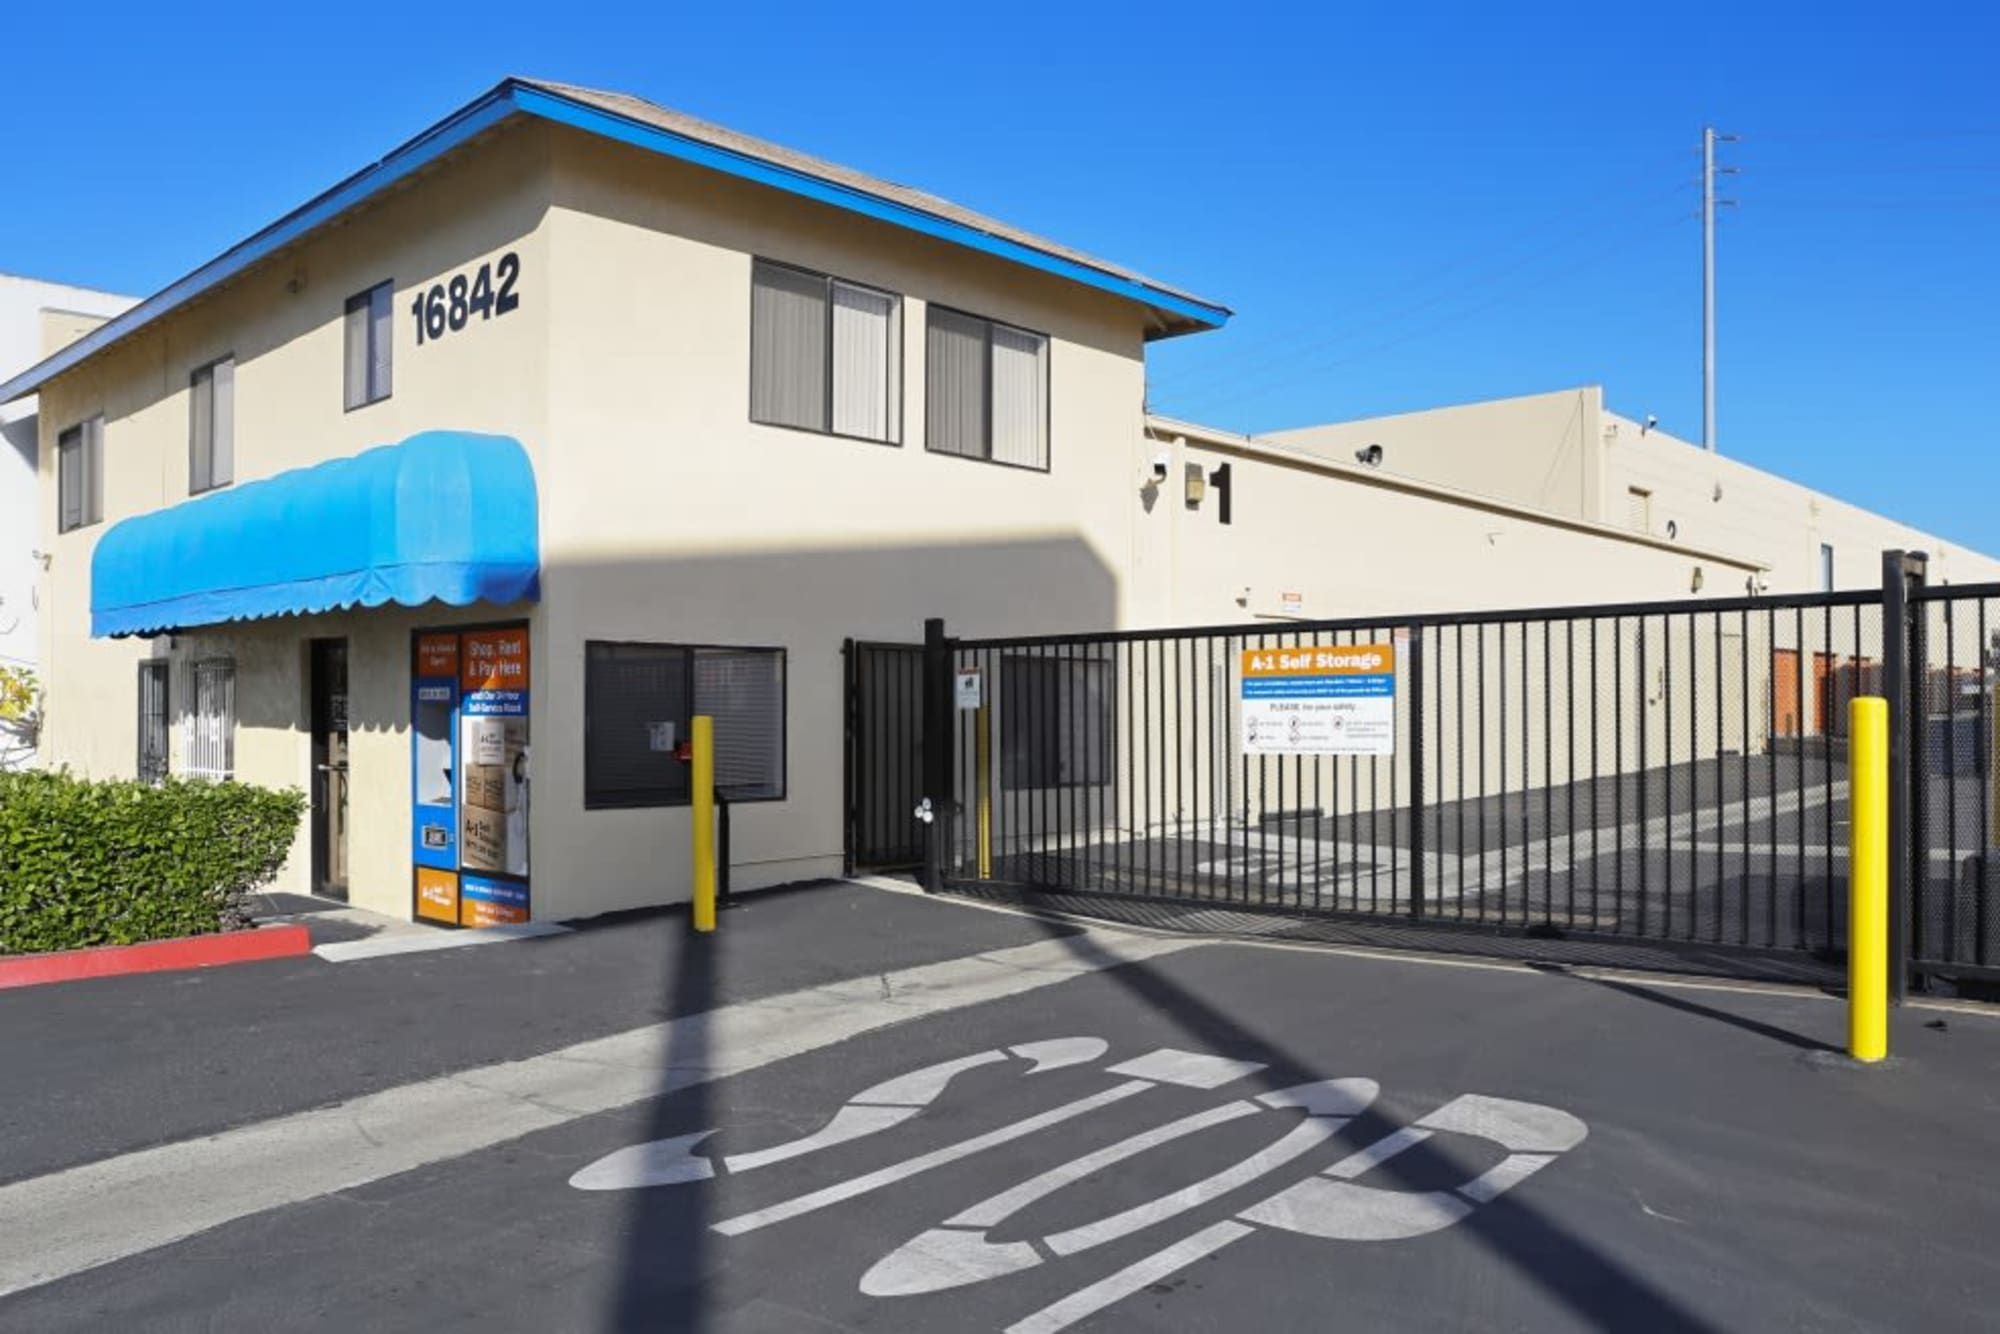 The front entrance and gate at A-1 Self Storage in Fountain Valley, California